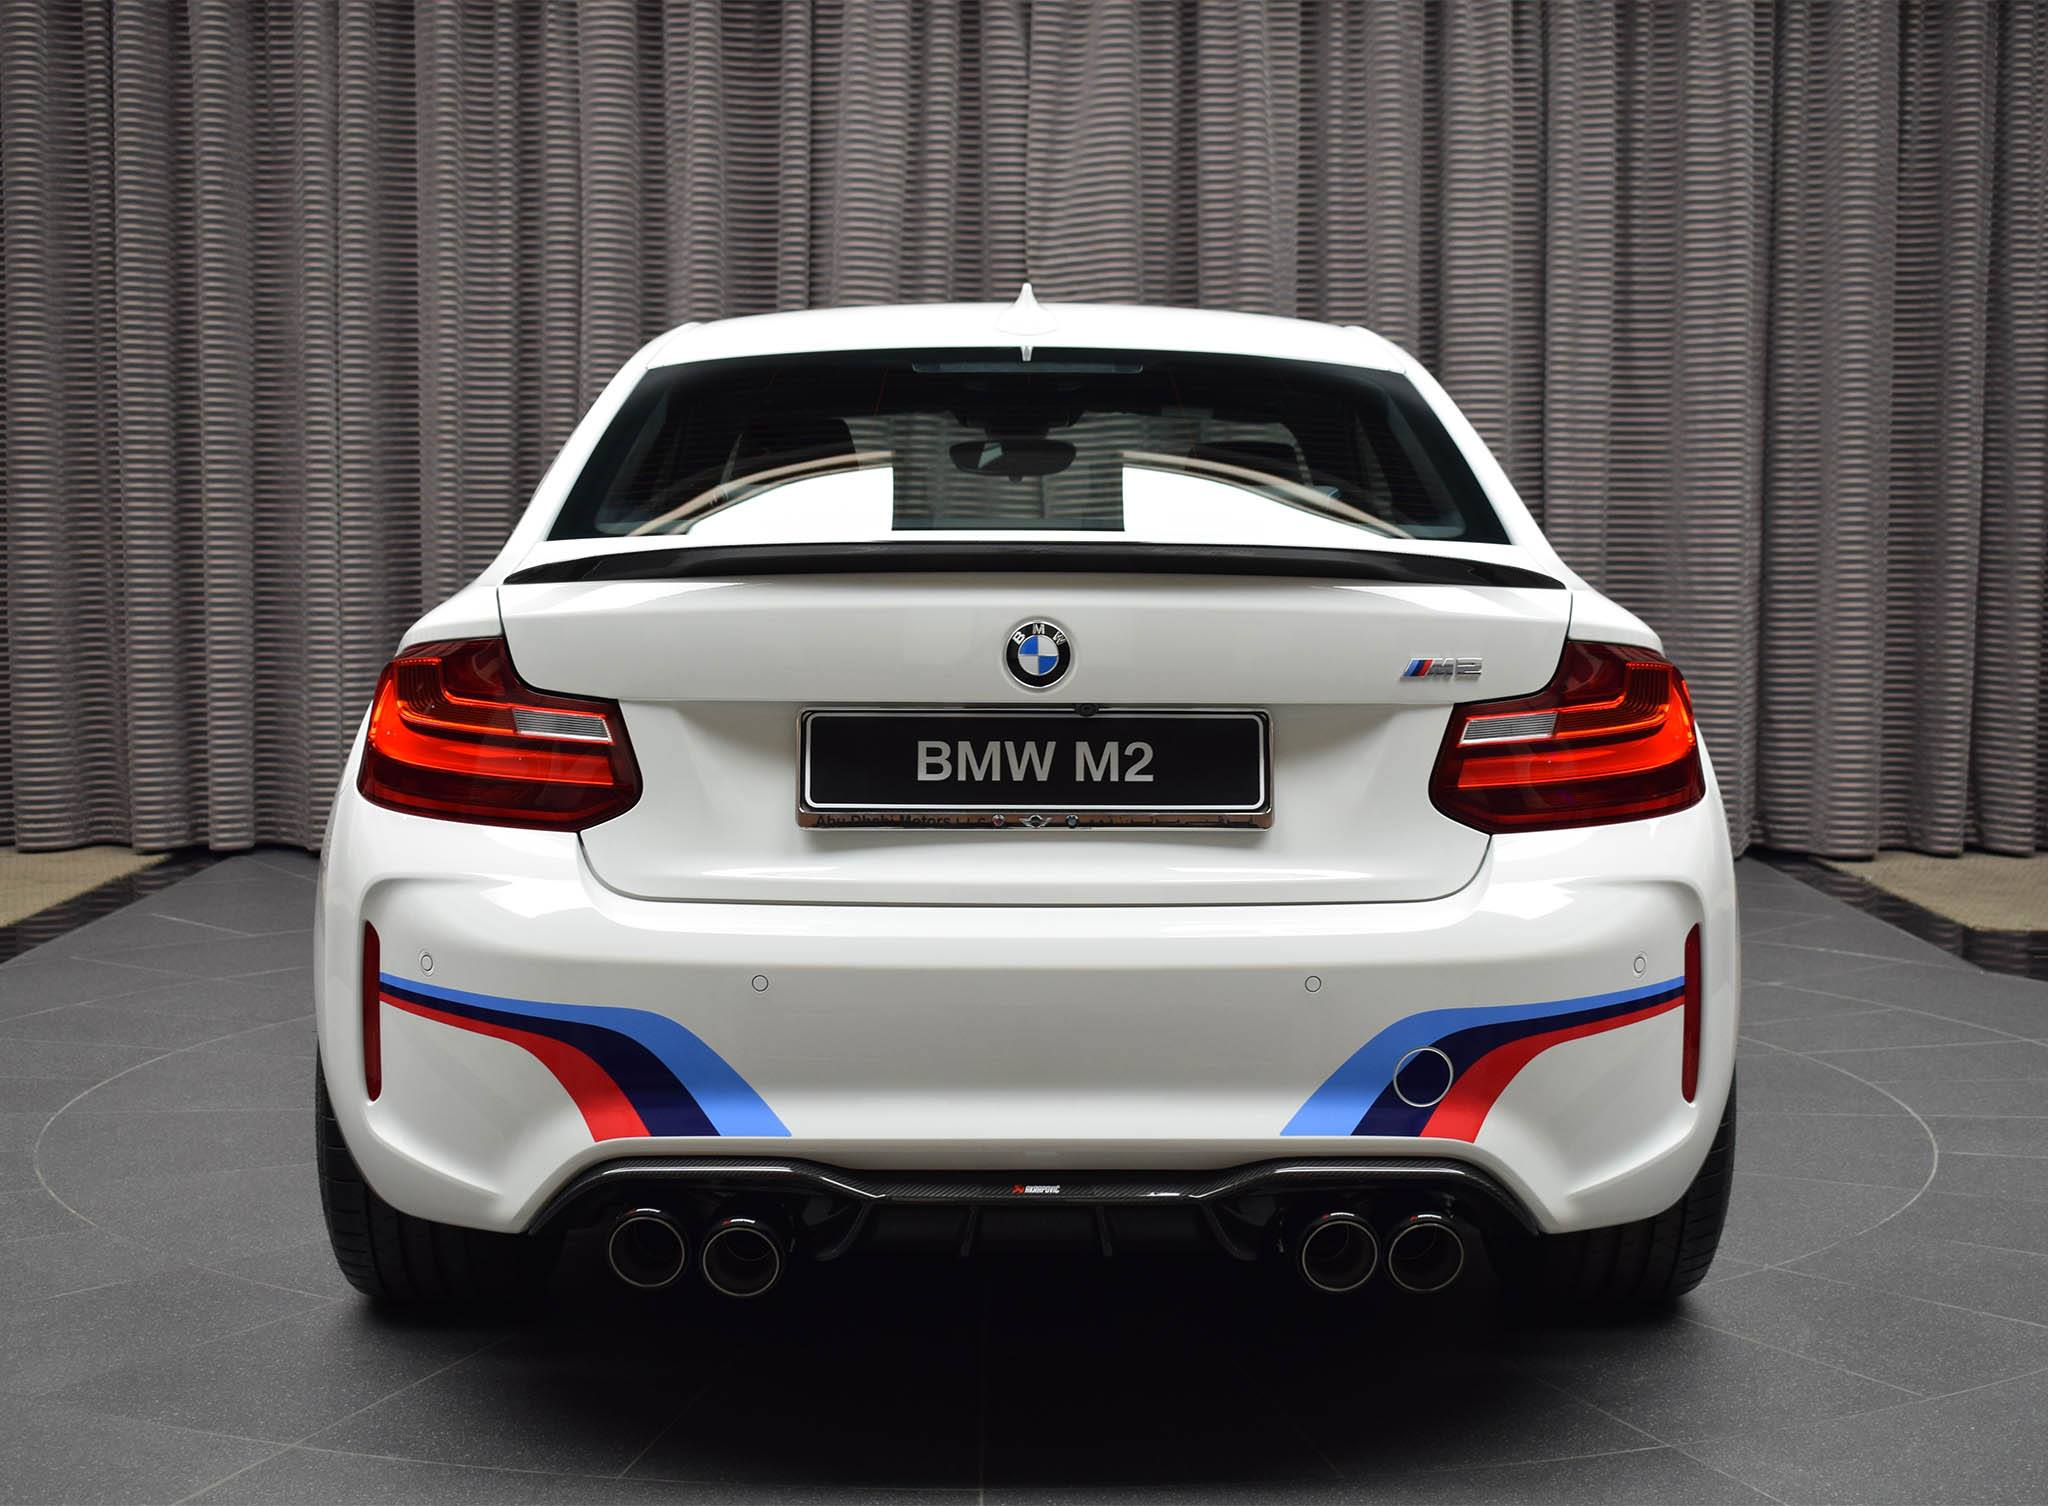 BMW M2 with M Performance parts (21)